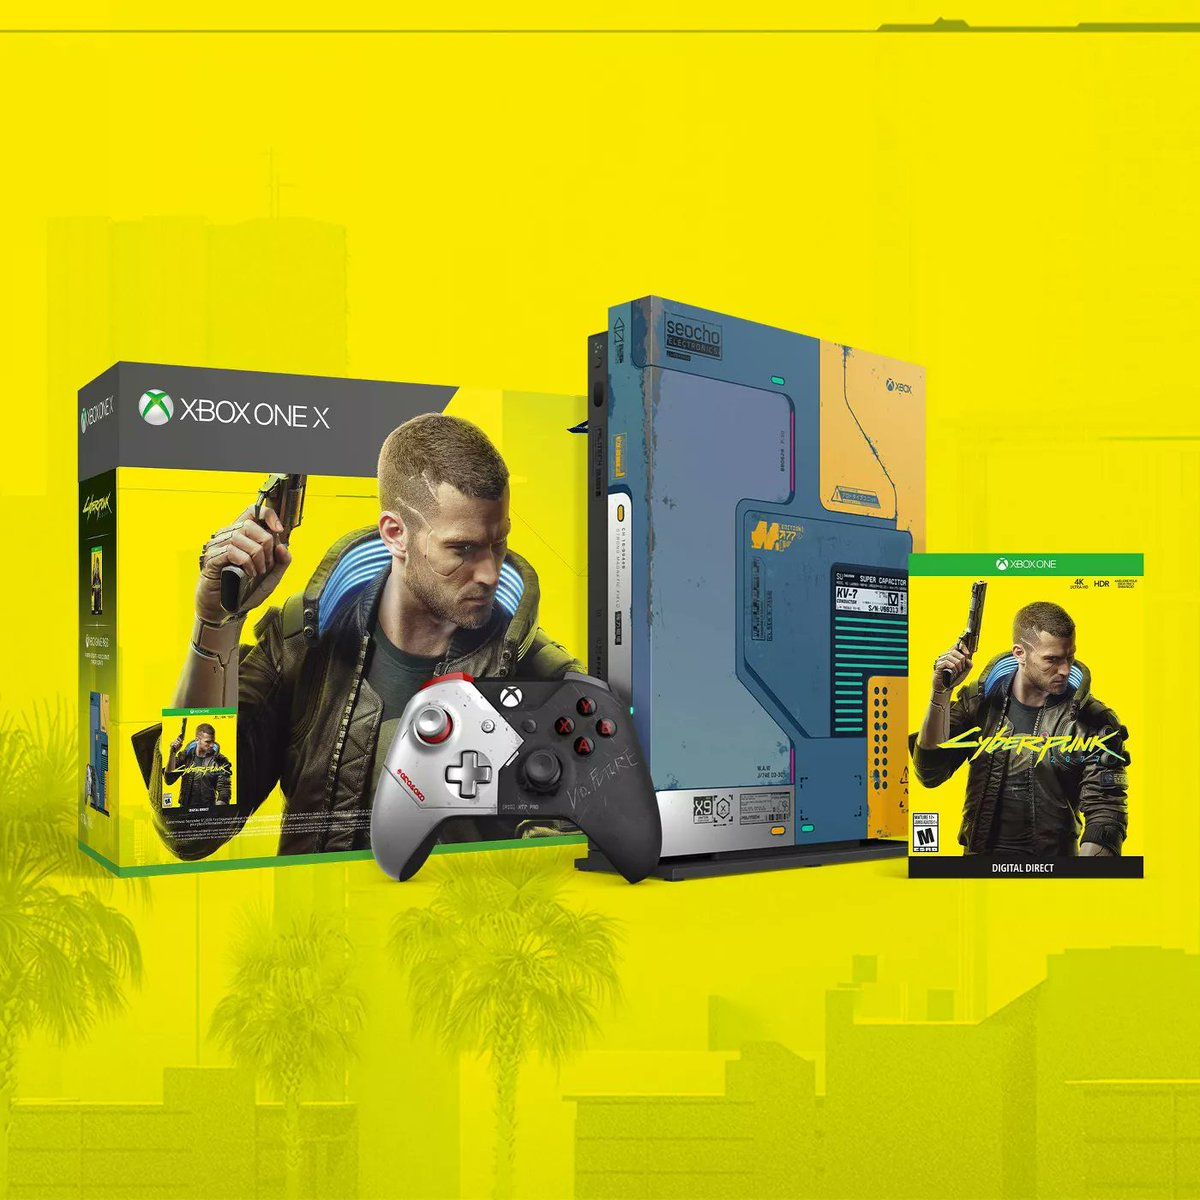 Xbox One X 1TB Console - Cyberpunk 2077 Limited Edition Bundle is available on Newegg Business ($299.99) https://bit.ly/2MAAkJ7 pic.twitter.com/bJGR4cYiKJ